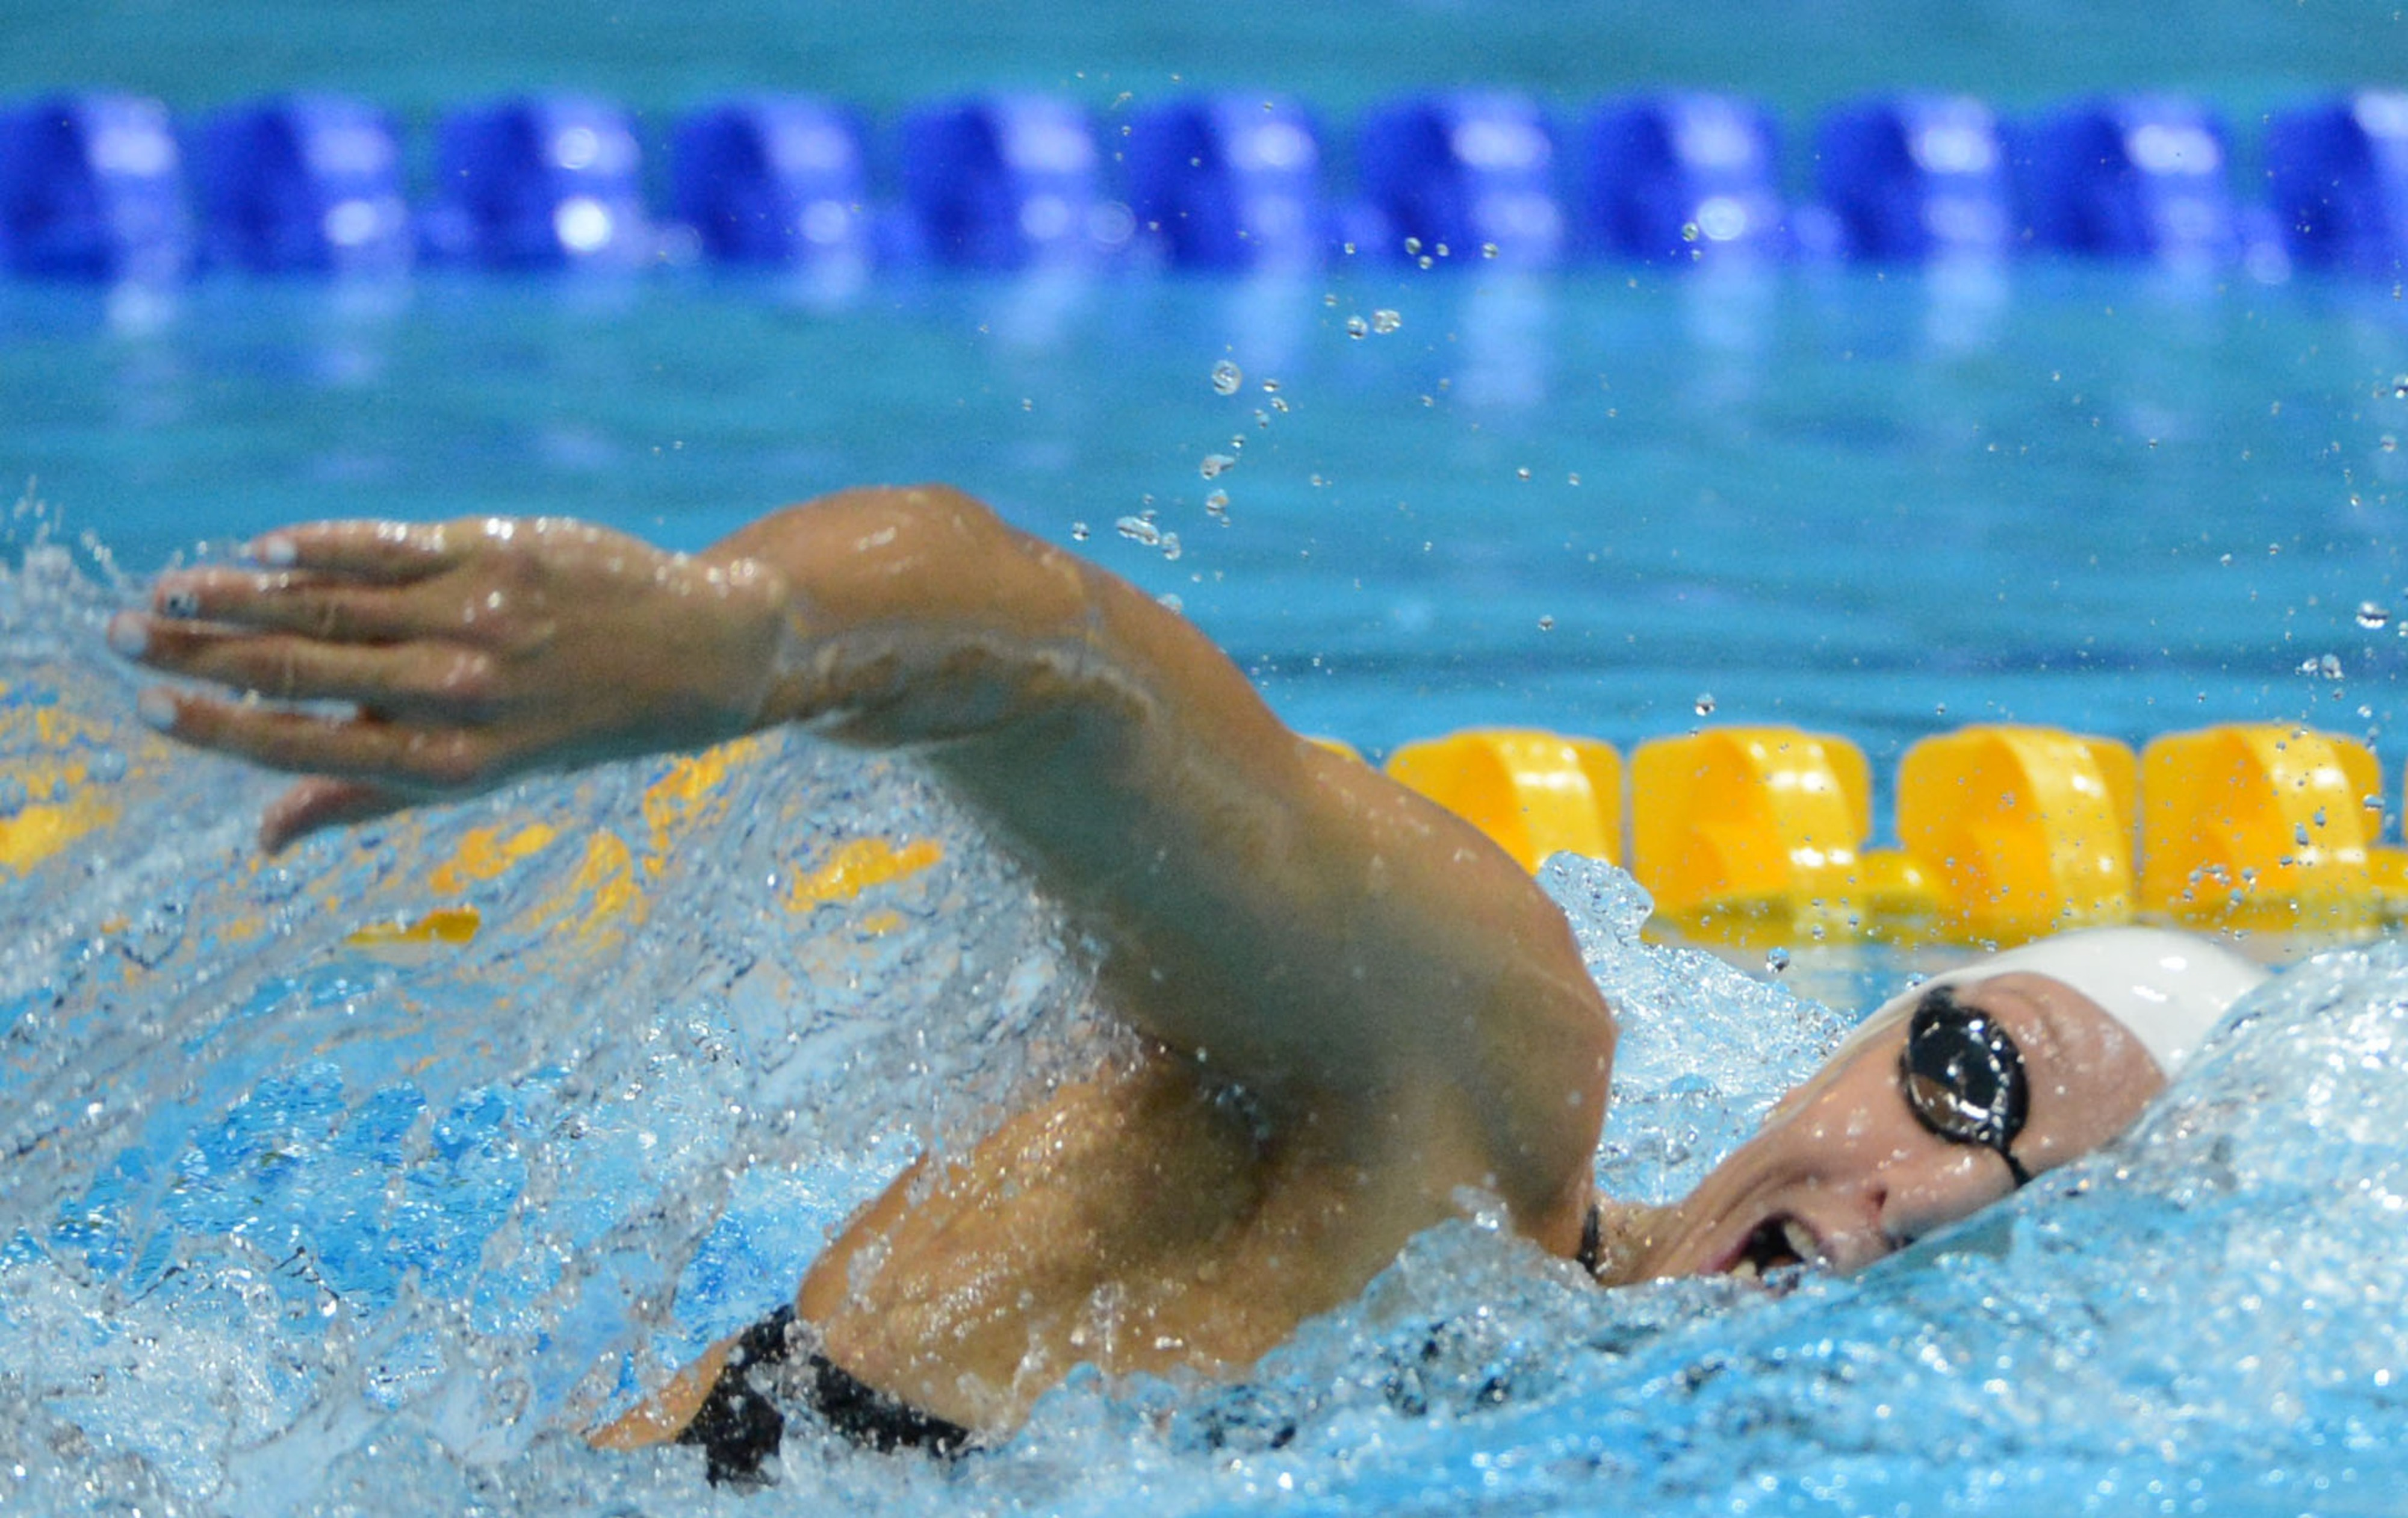 Aug 1, 2012; London, United Kingdom; Dana Vollmer (USA) swims in the women's 4x200 relay heat during the London 2012 Olympic Games at Aquatics Centre. Mandatory Credit: Kirby Lee-USA TODAY Sports